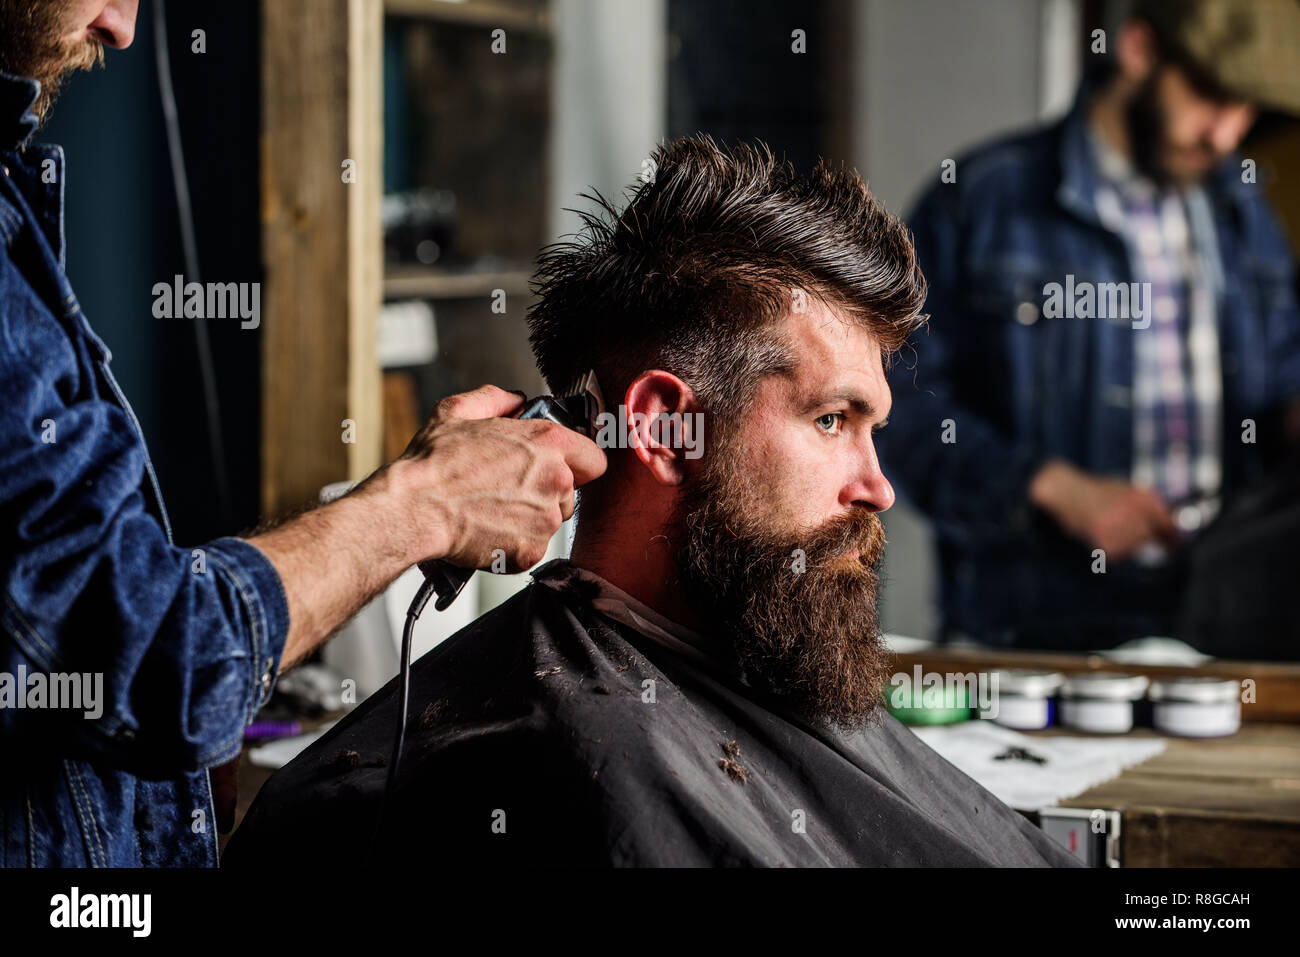 Barber styling hair of brutal bearded client with clipper. Barber with hair clipper works on hairstyle for bearded man barbershop background. Hipster lifestyle concept. Hipster client getting haircut. - Stock Image